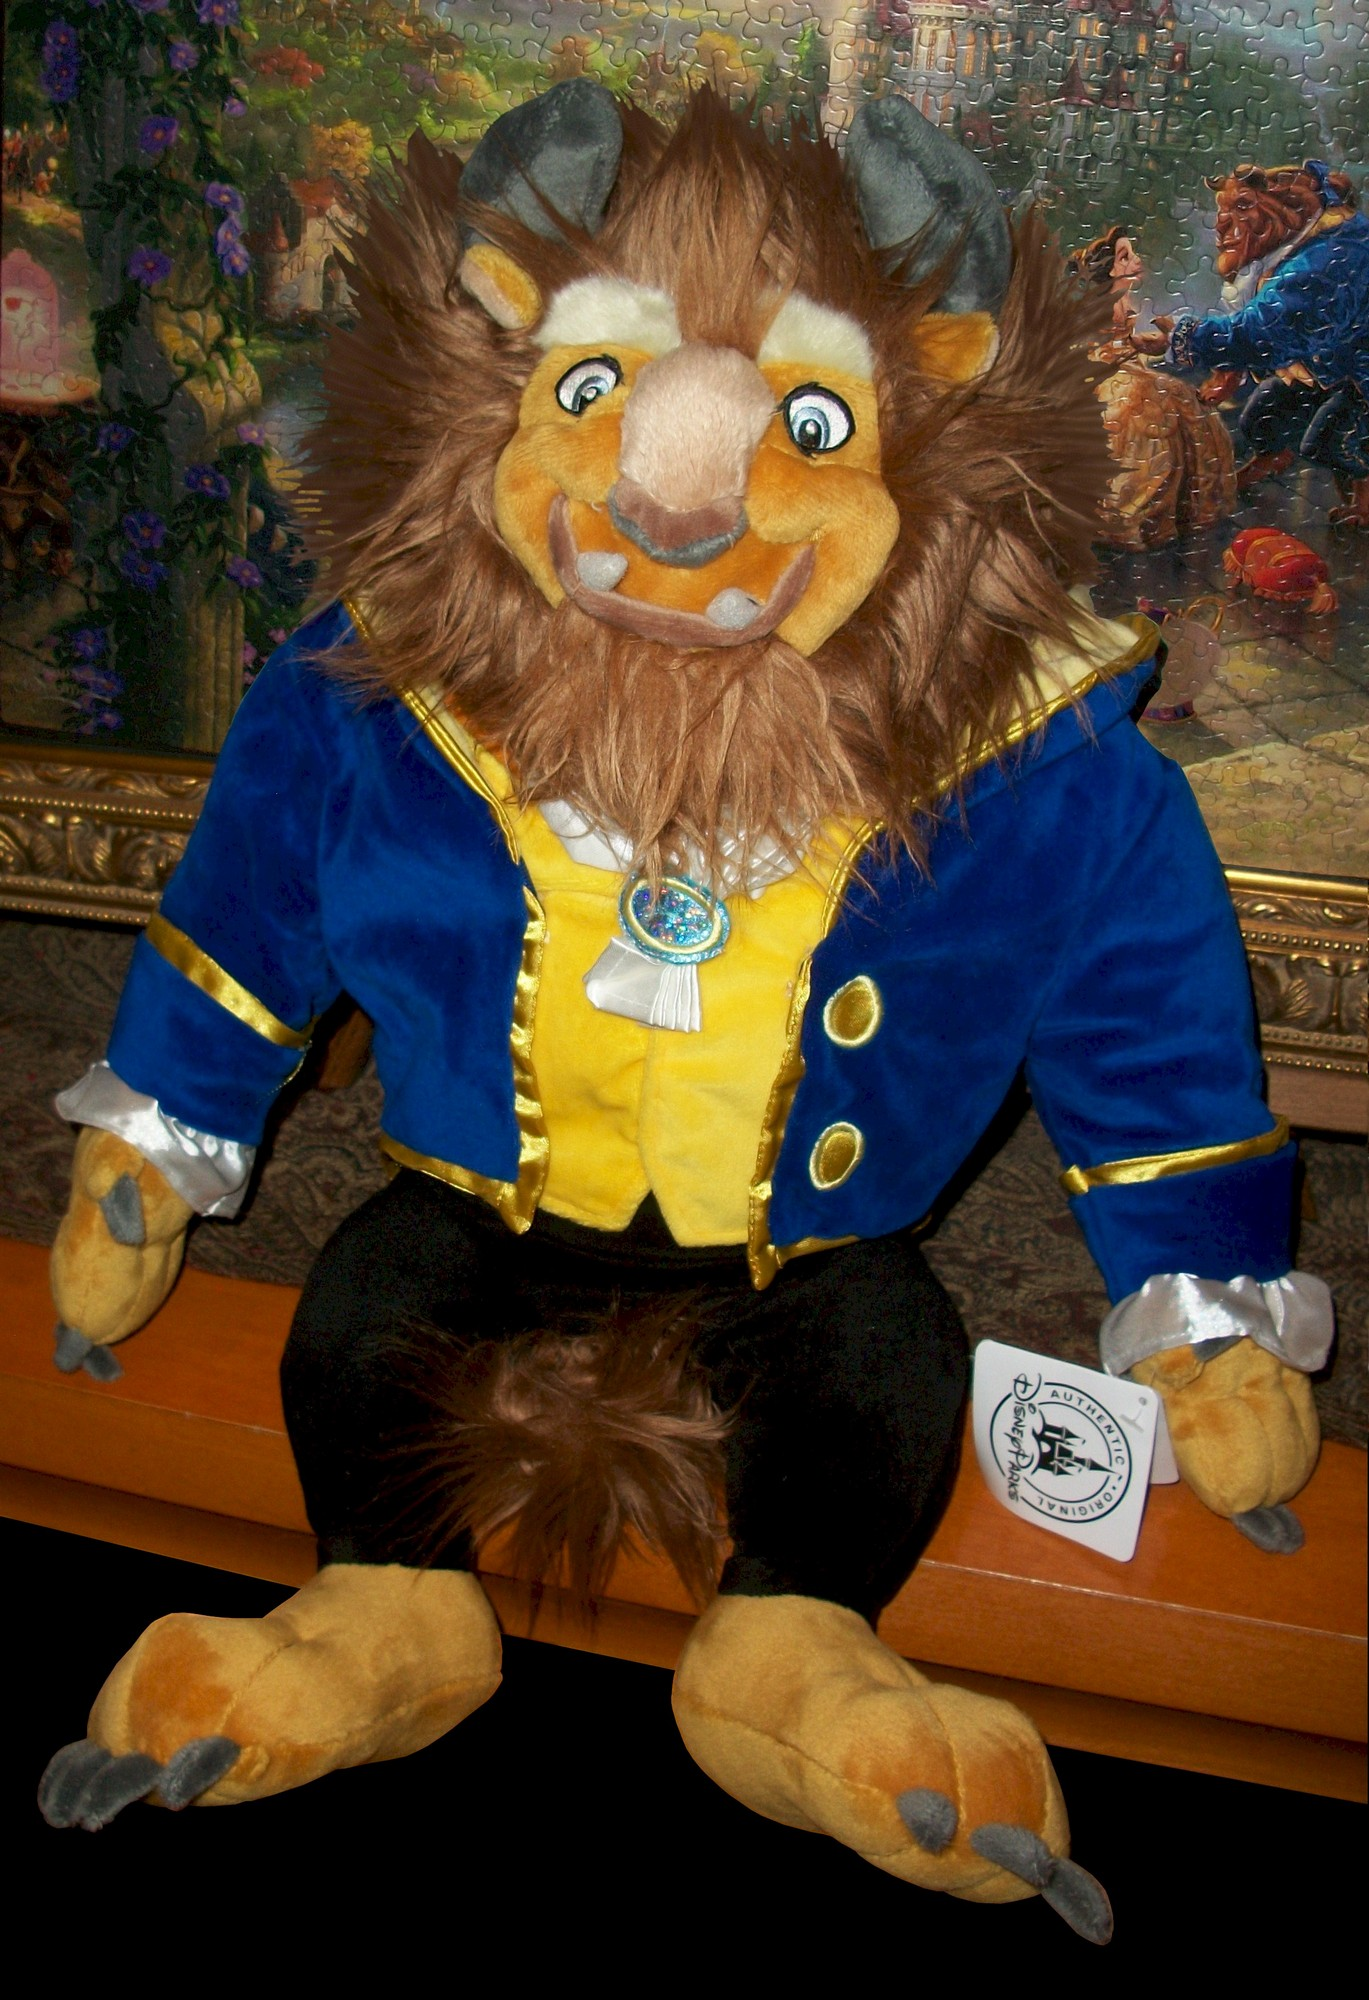 "Disney's Magic Kingdom 18"" Beast Plush"